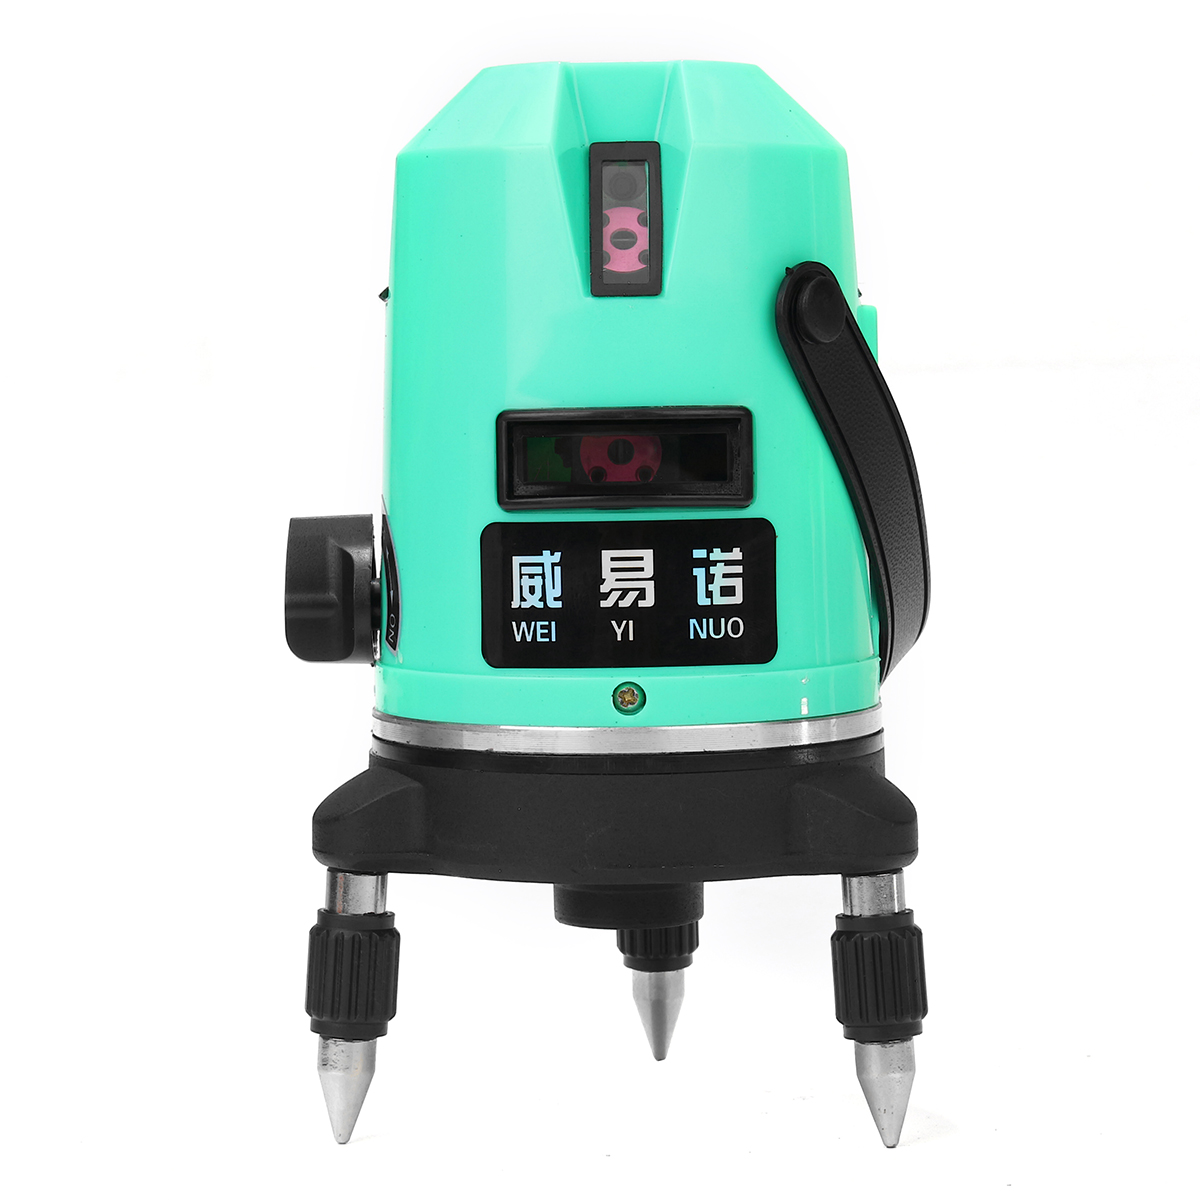 5 Line 6 Point 4V1H Rotary Laser Level Measure Automati